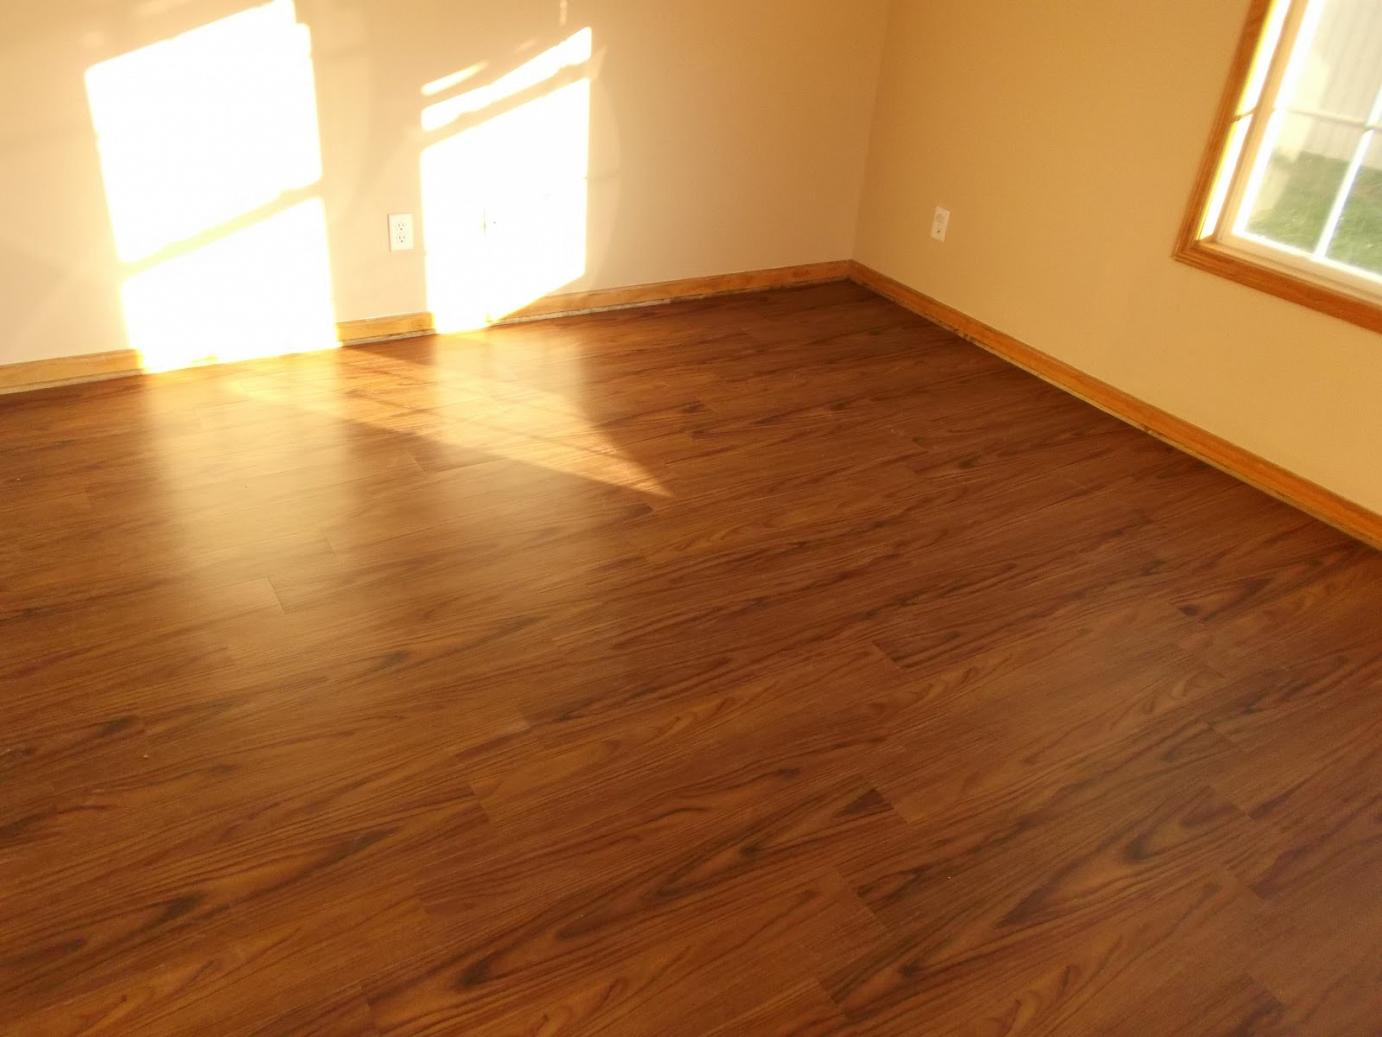 Wooden Flooring By Konecto Matched With White Wall And Baseboard Molding For Home Interior Design Ideas